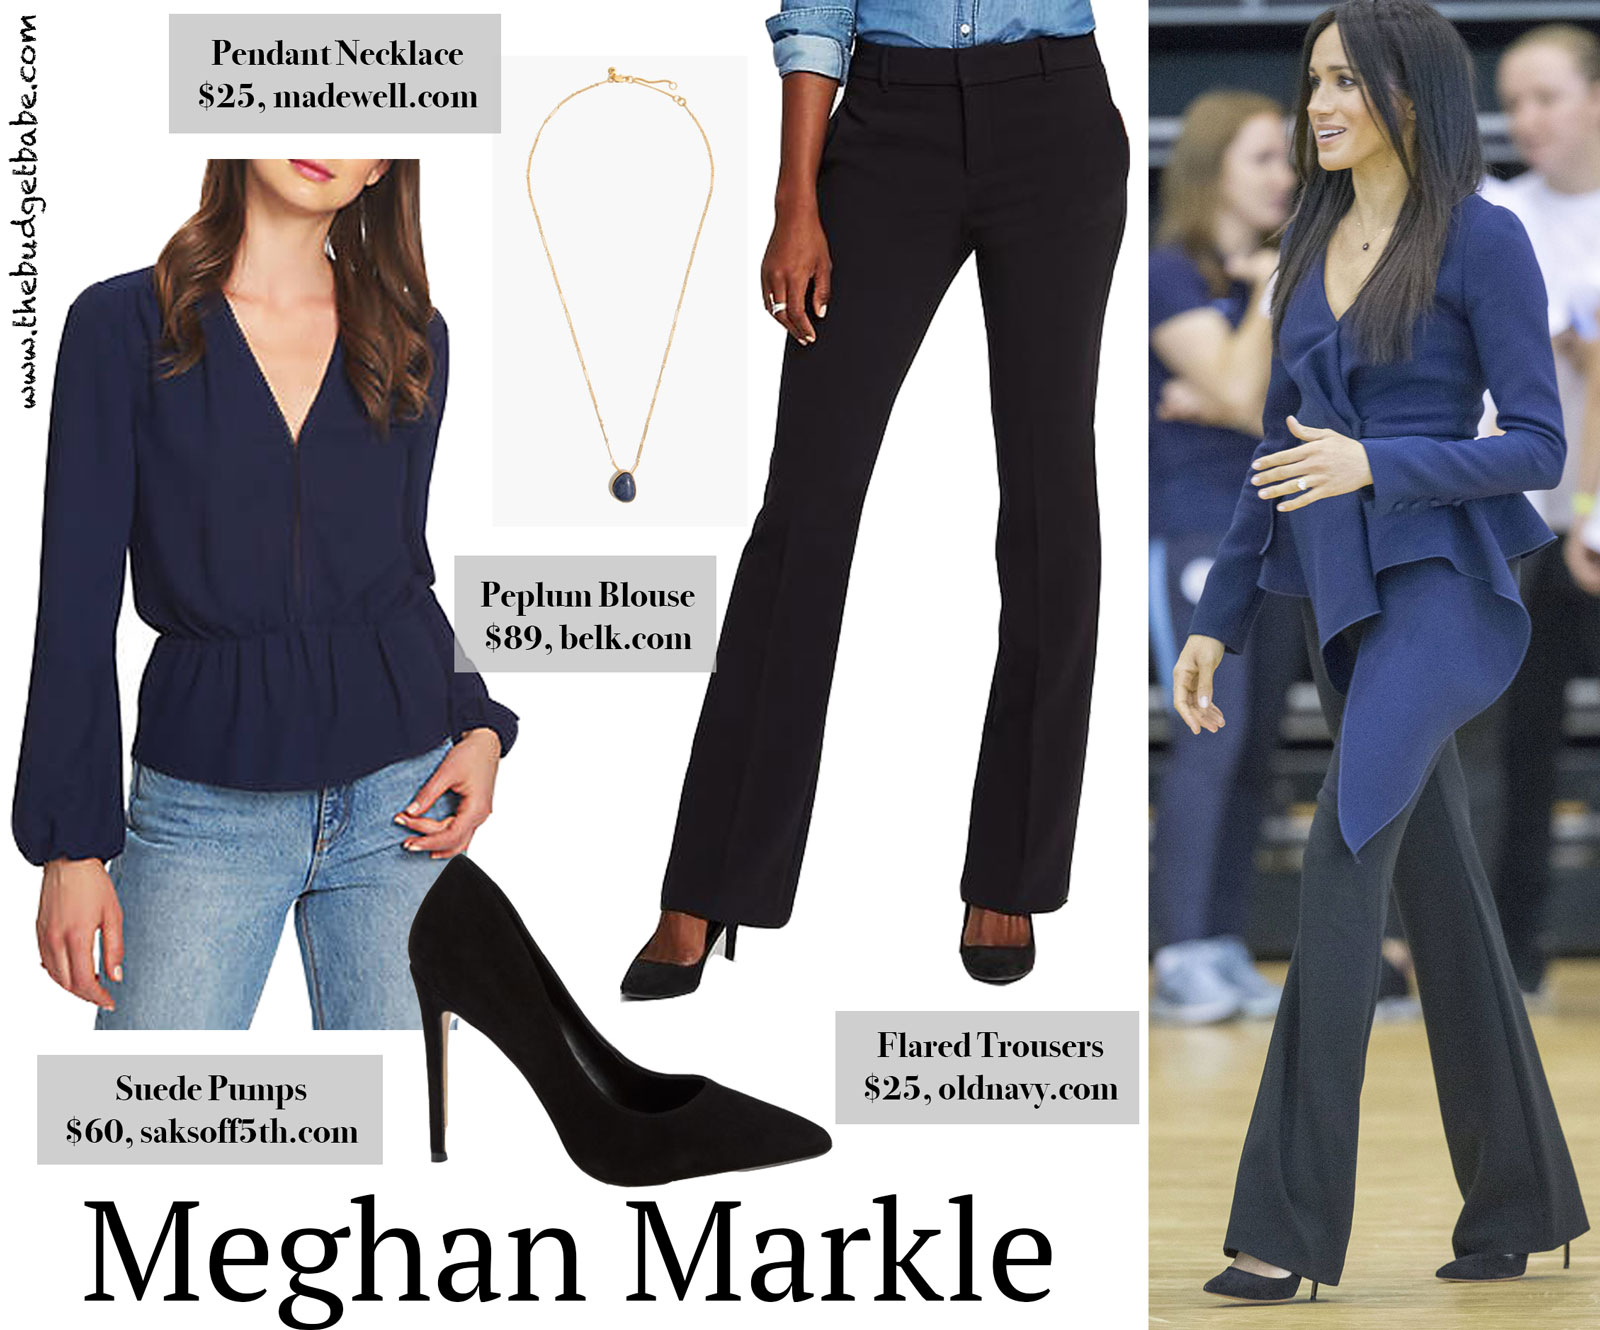 Meghan Markle Blue Peplum Blouse Look for Less